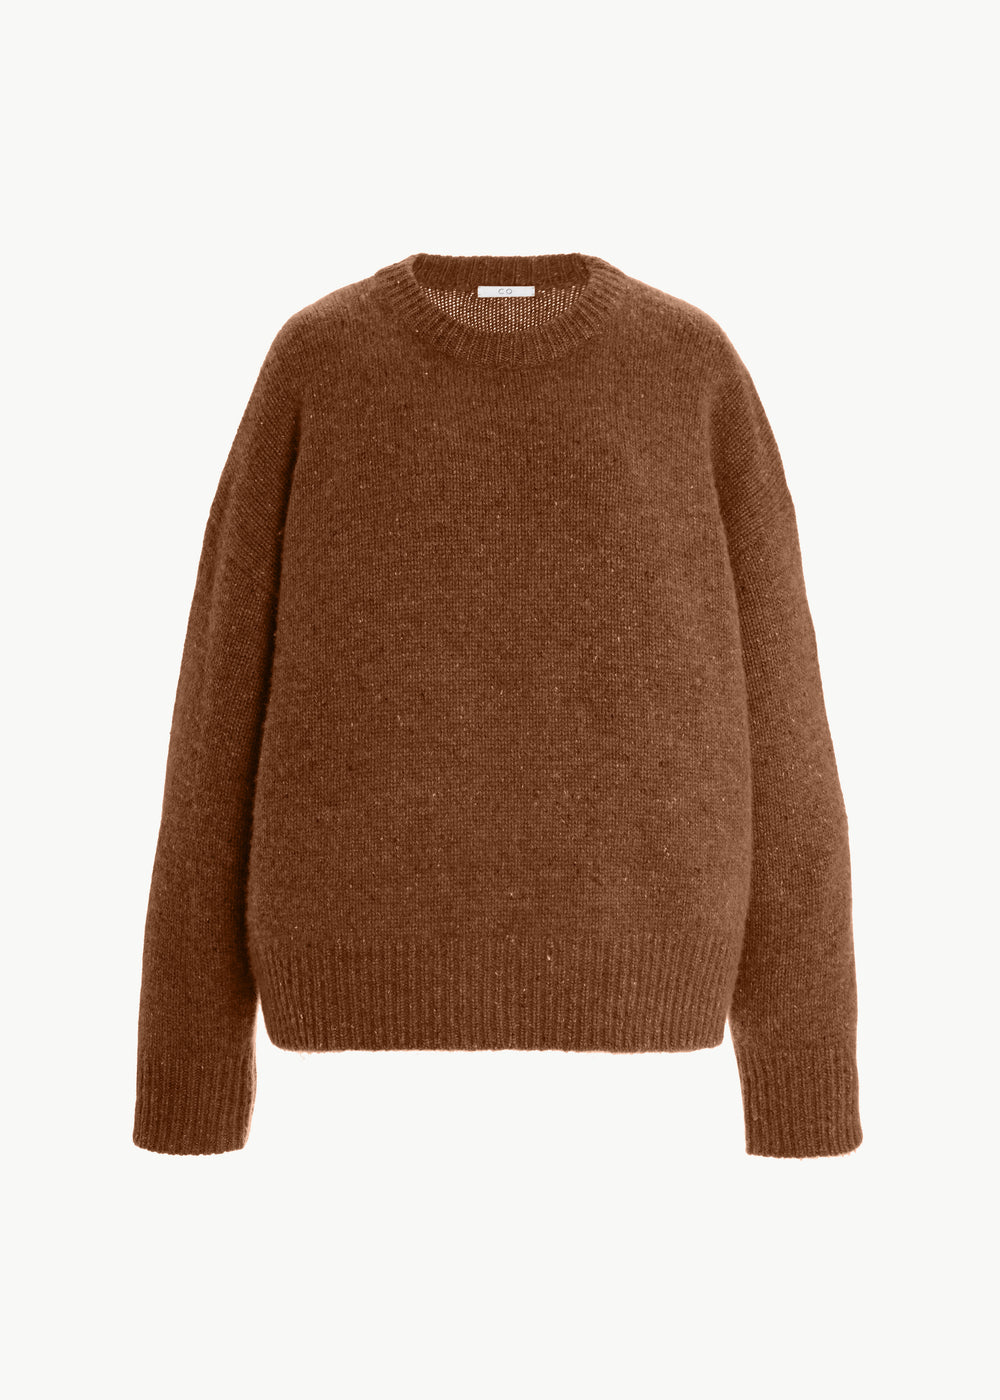 Crew Neck Sweater in Cashmere - Chestnut - CO